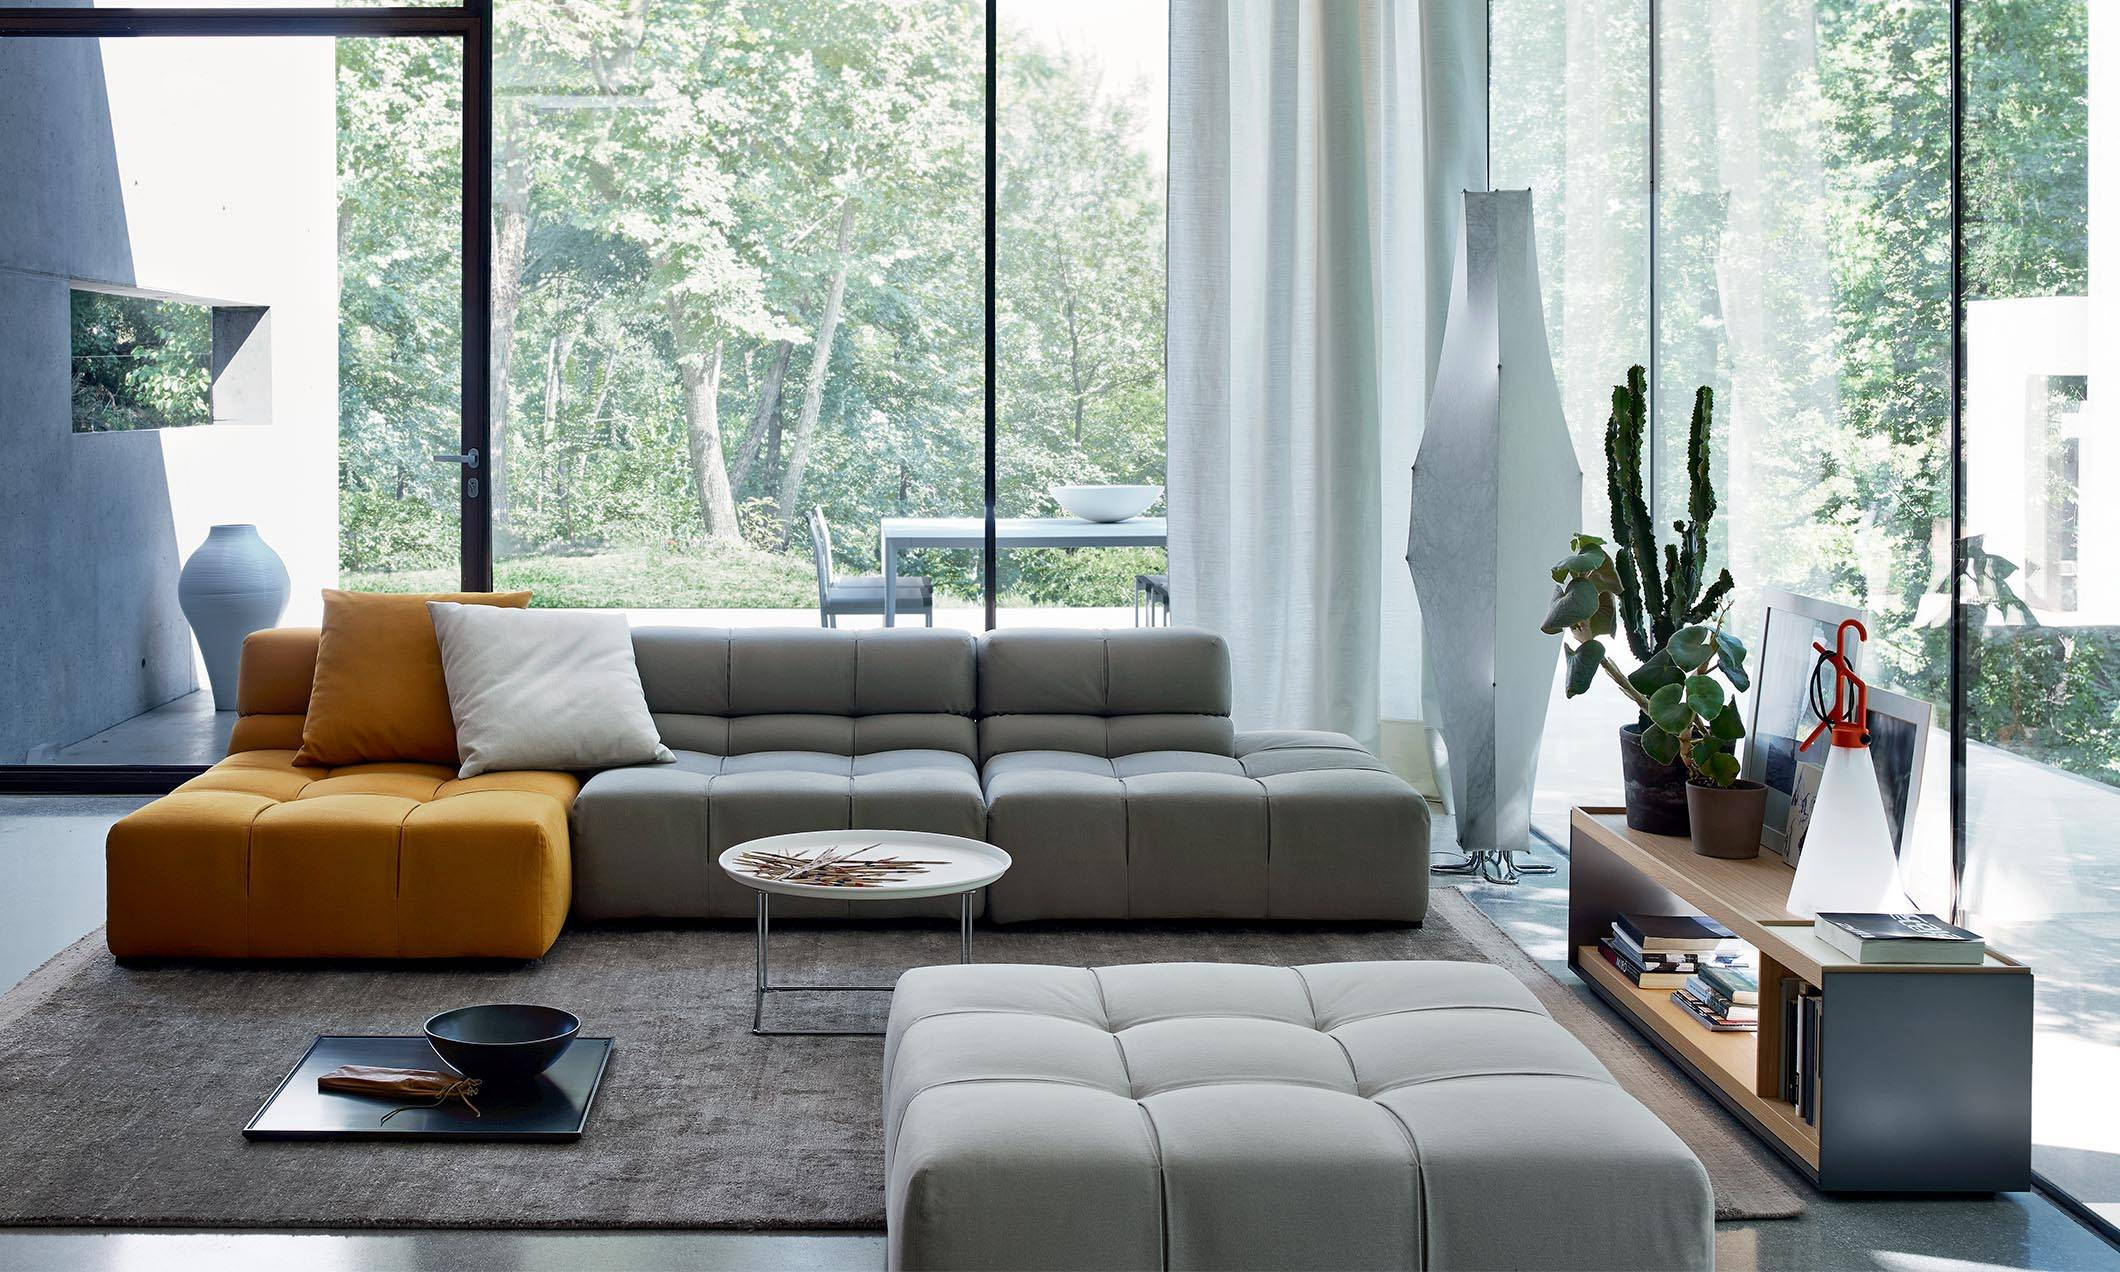 Best ideas about Family Room Couches . Save or Pin Modern Living Room Furniture Design Now.